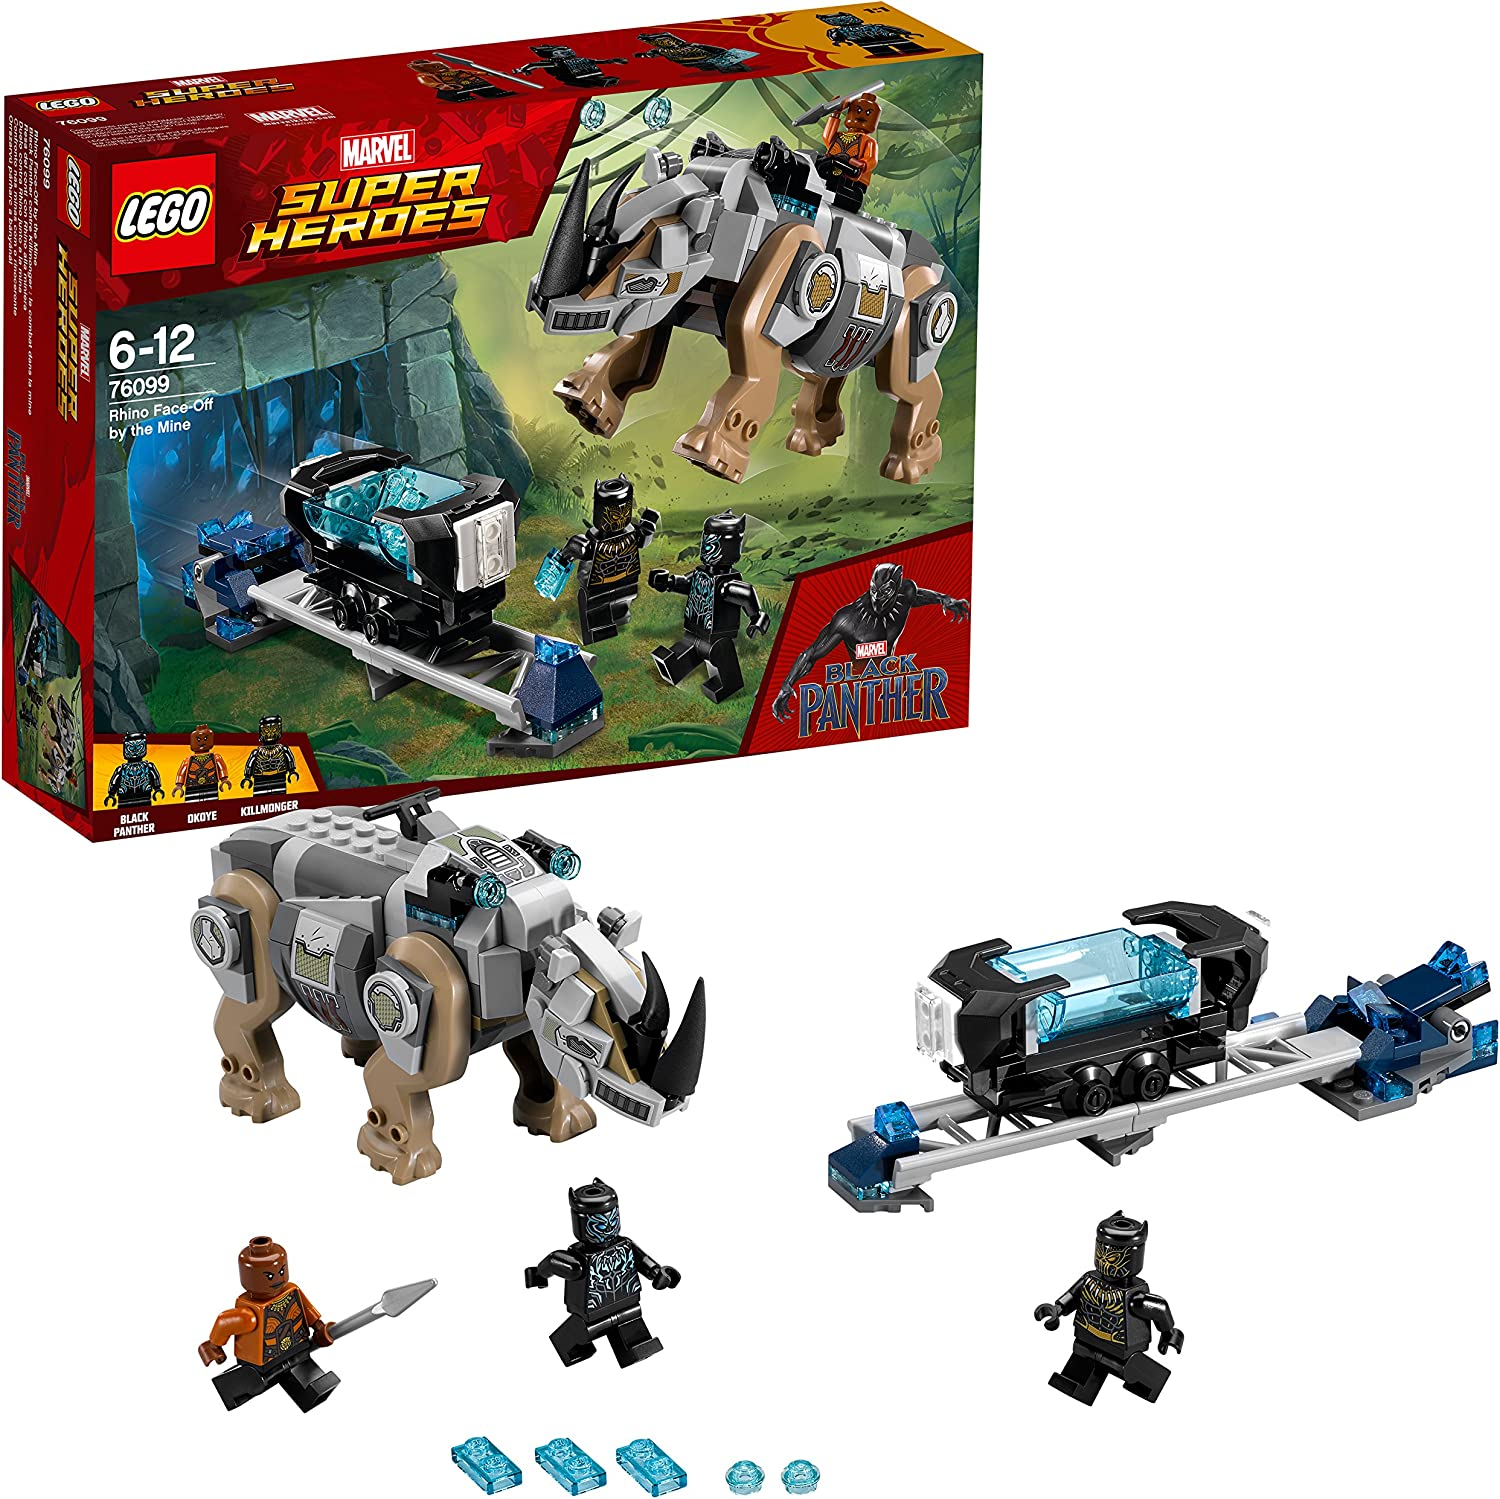 LEGO UK  76099 Marvel Super Heroes Rhino FaceOff by the Mine Toy for Boys and Girls